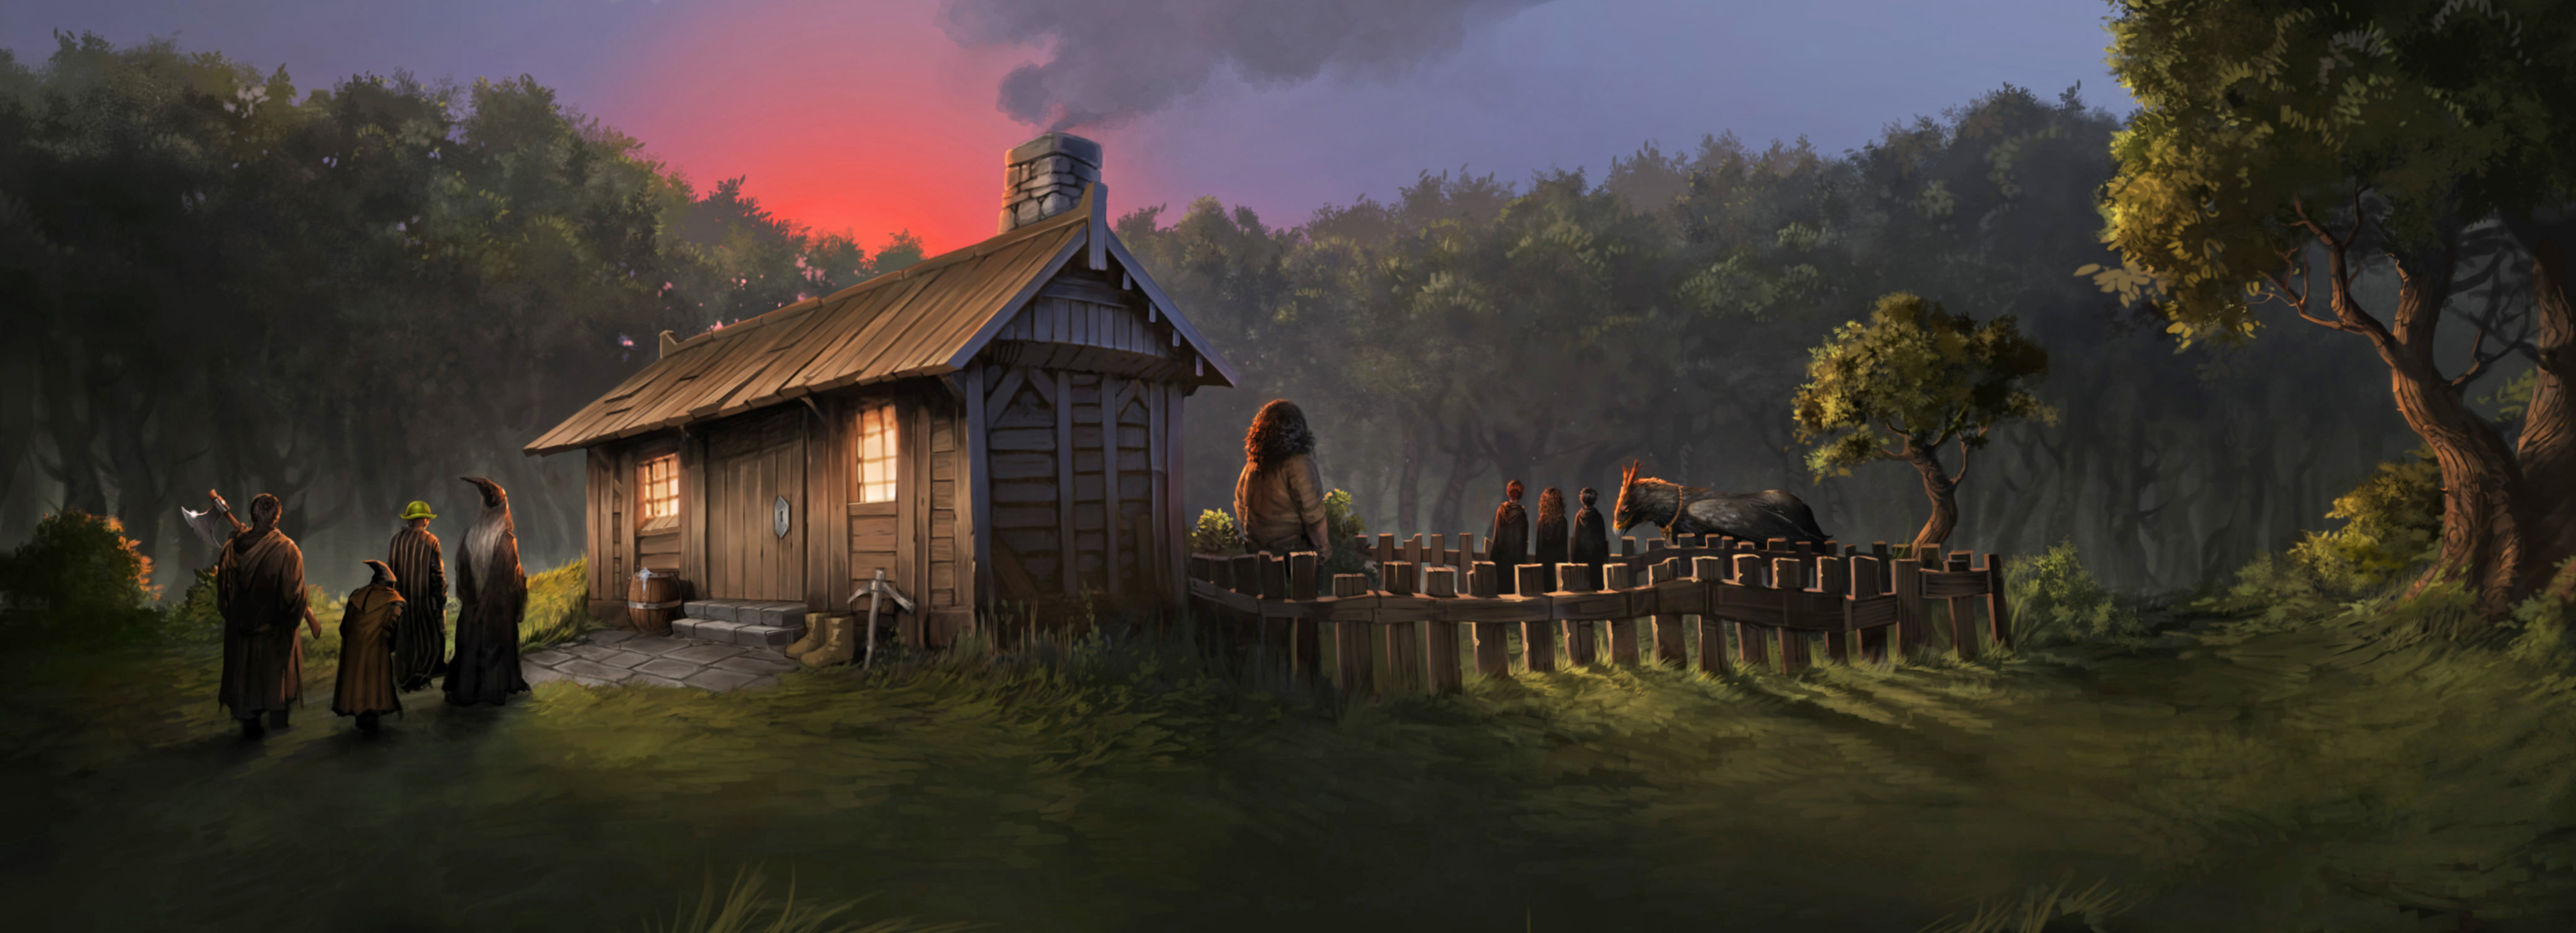 Why hagrid s hut might be the best place to live pottermore What house was hagrid in